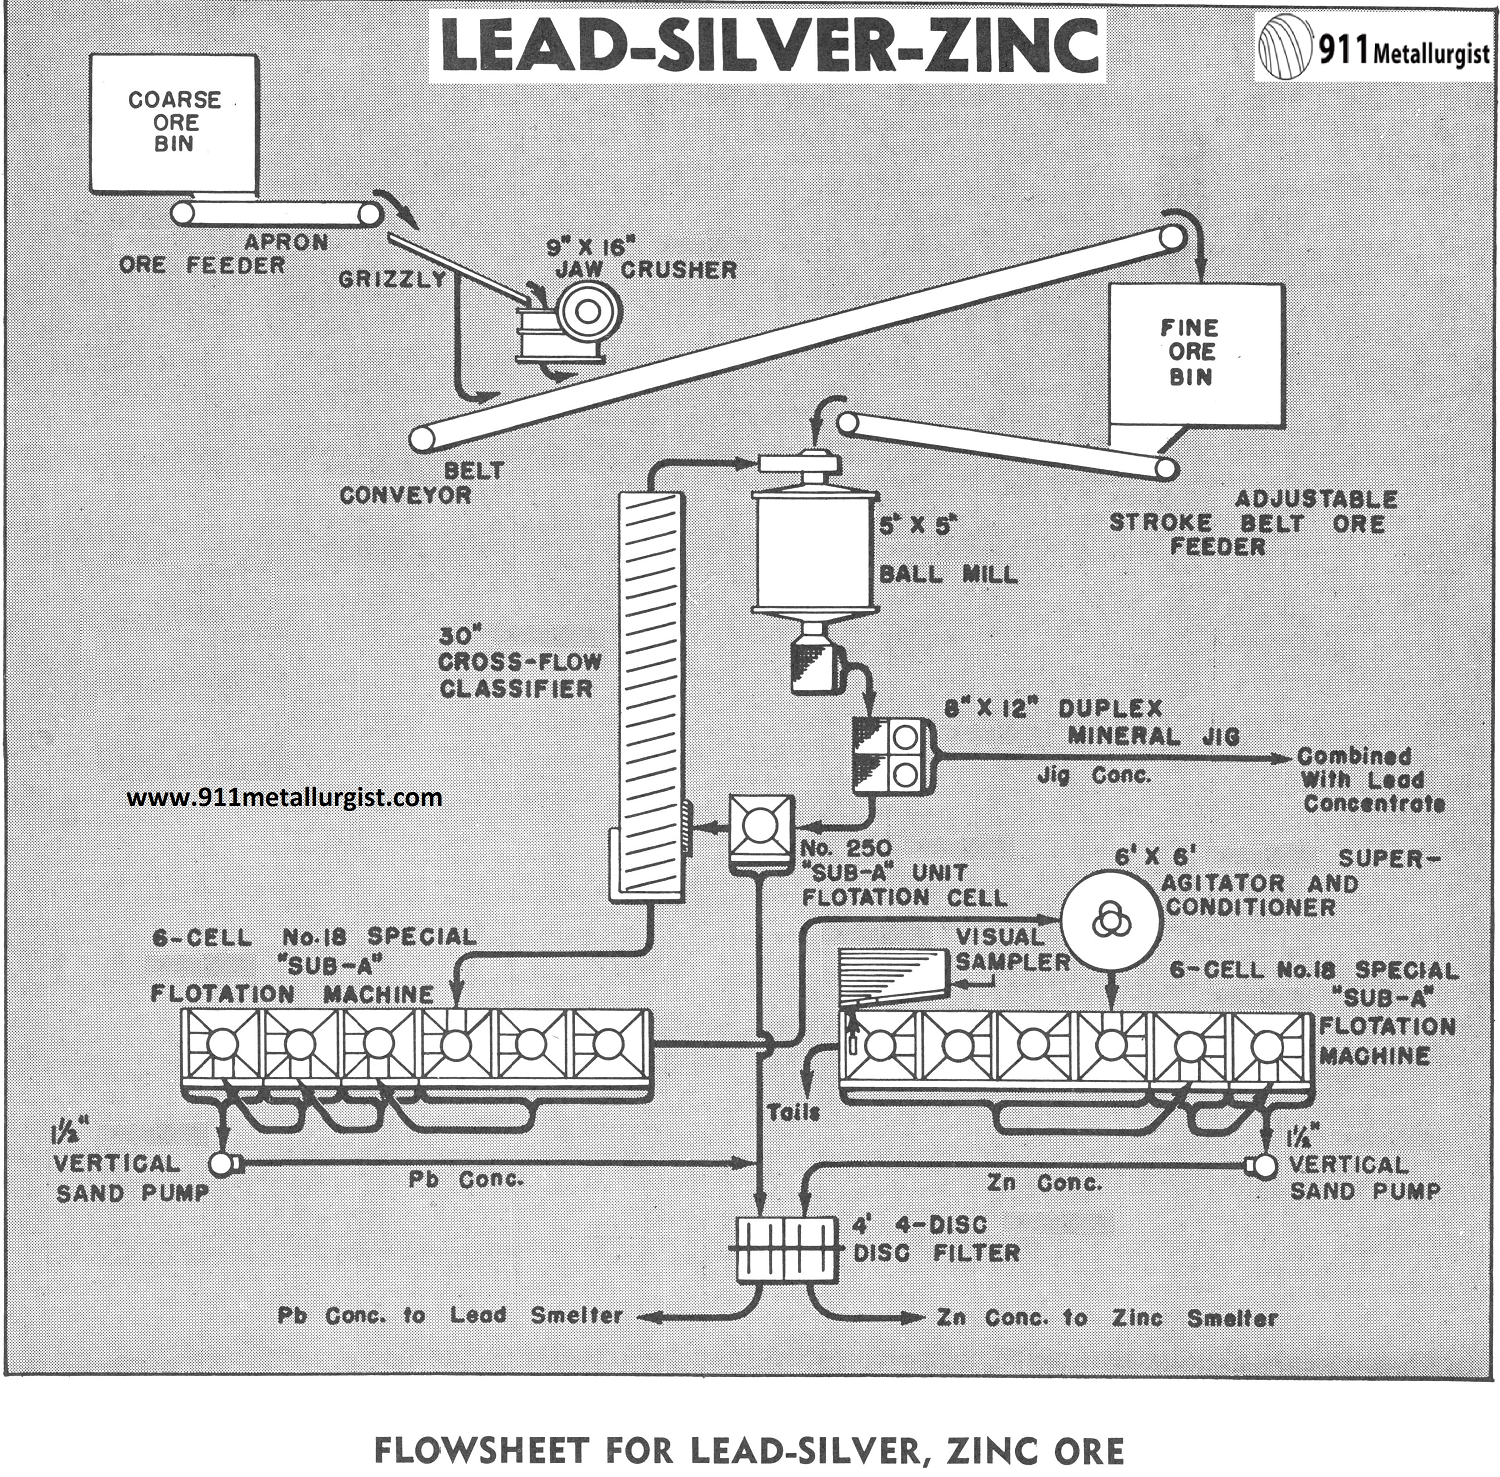 Flowsheet for Lead-Silver, Zinc Ore